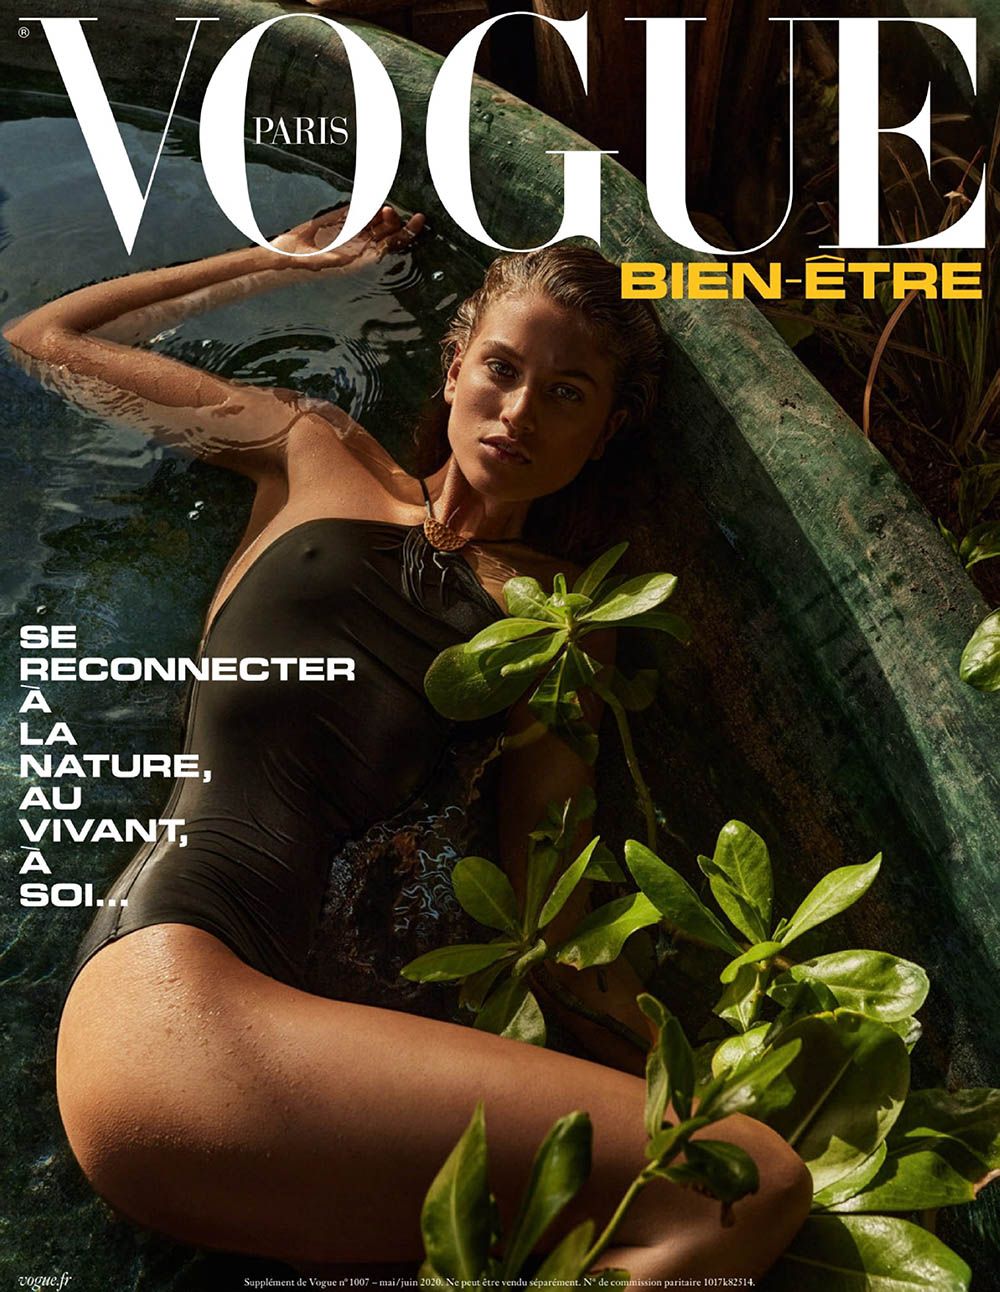 Altyn Simpson covers Vogue Wellness Paris May June 2020 by Alique